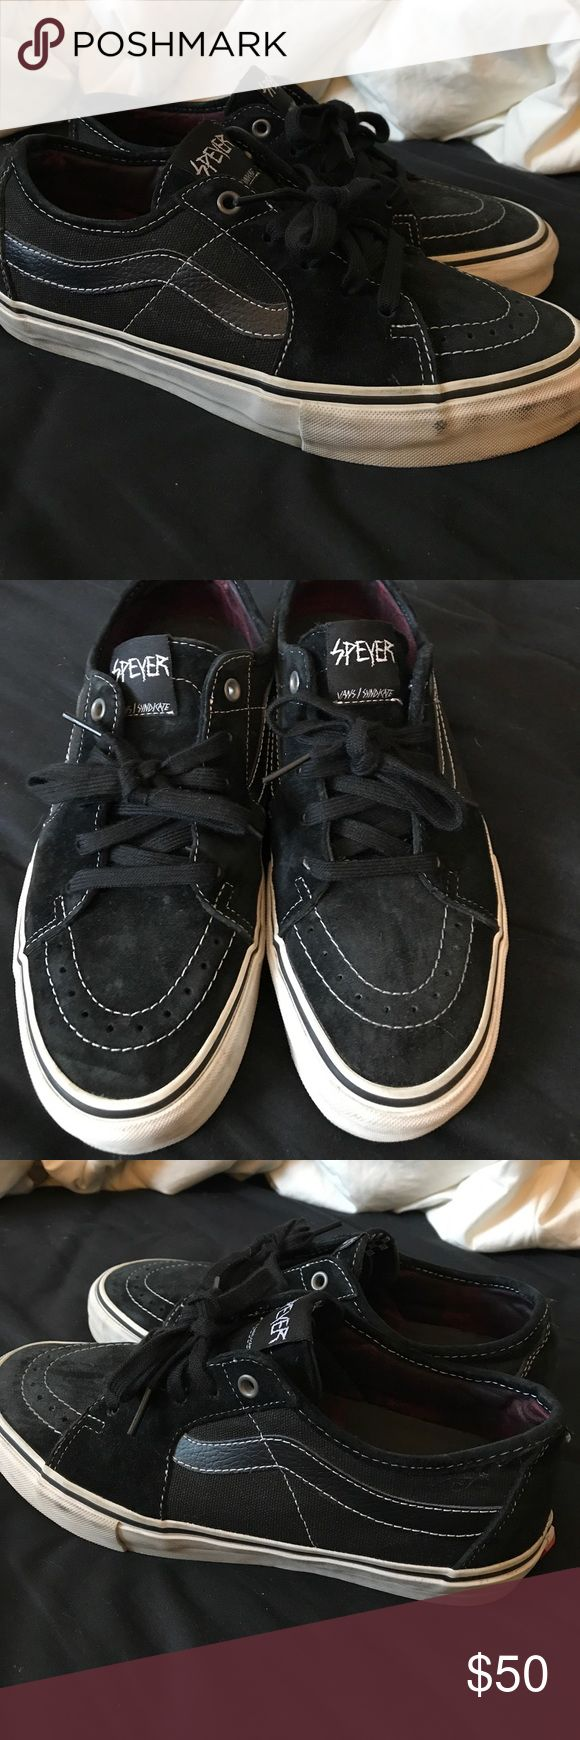 Vans Syndicate Sk8 Low Wade Speyer Wade Speyer Vans Syndicate. Not available anymore. Worn just a few times. Vans Shoes Athletic Shoes